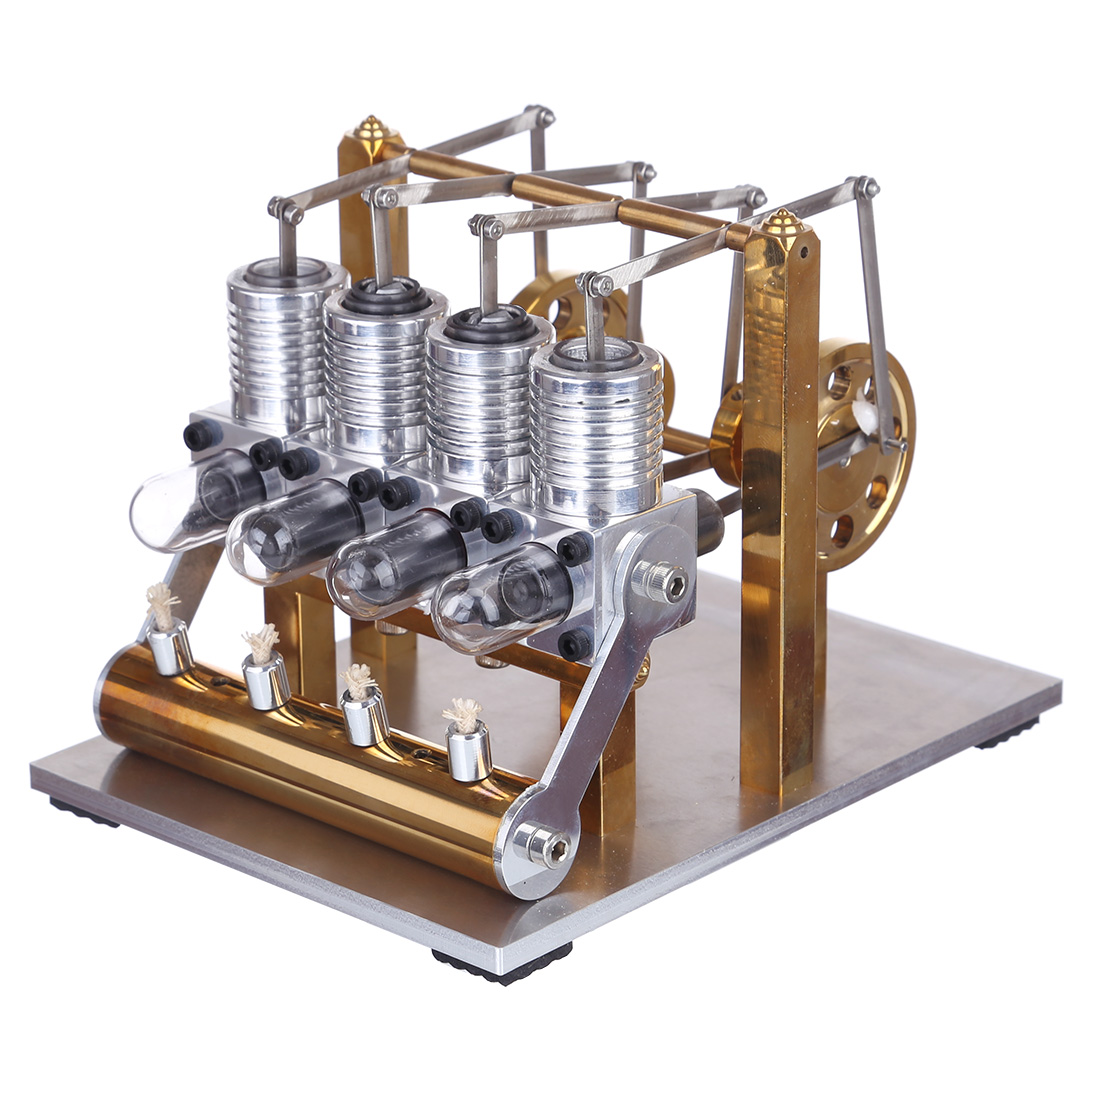 4 Cylinder Stirling Engine